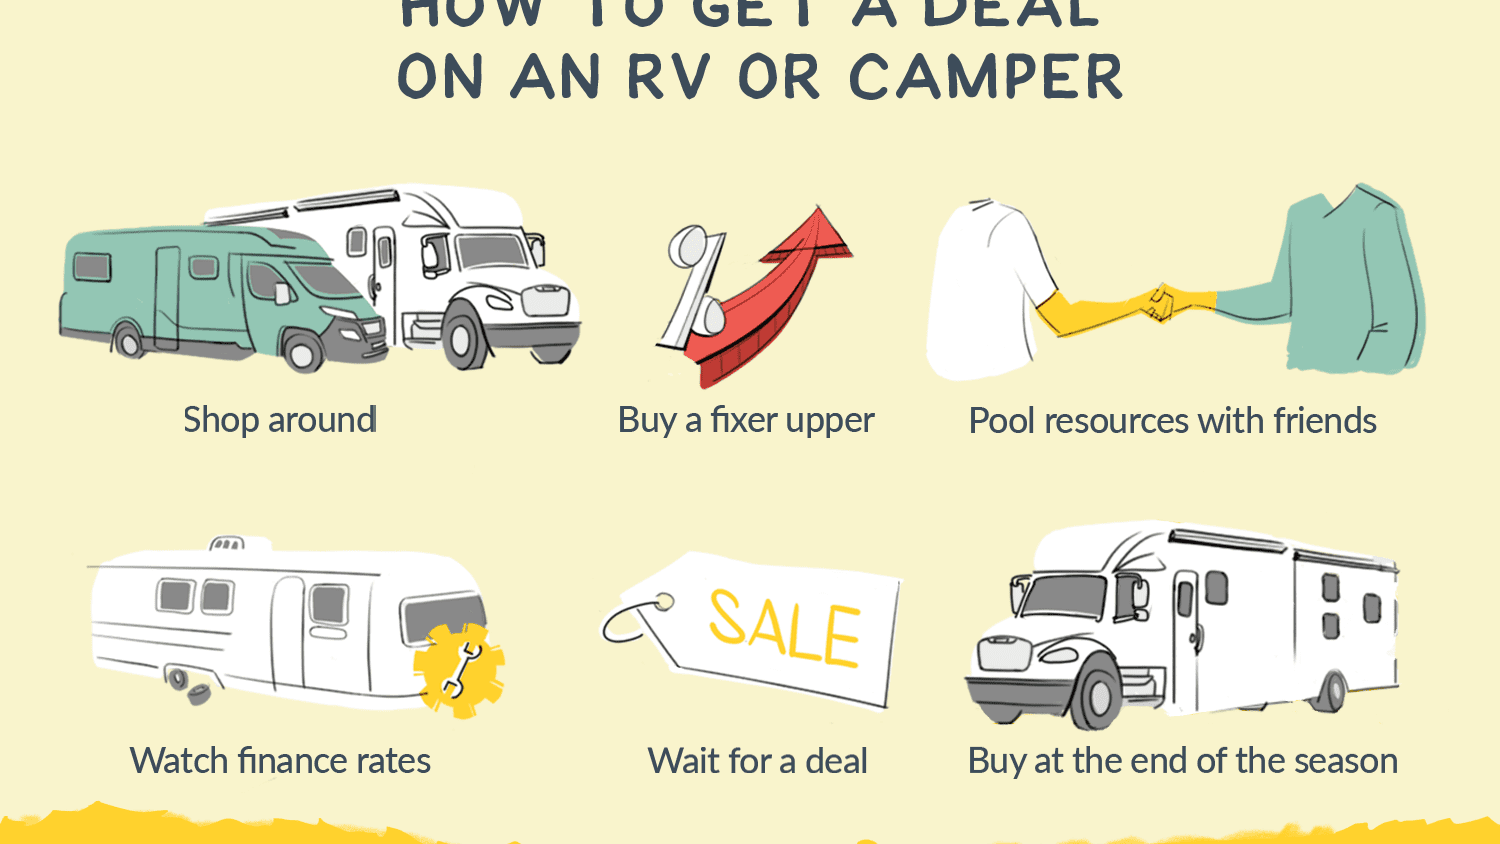 Tips for Negotiating the Best Price on an RV or Camper